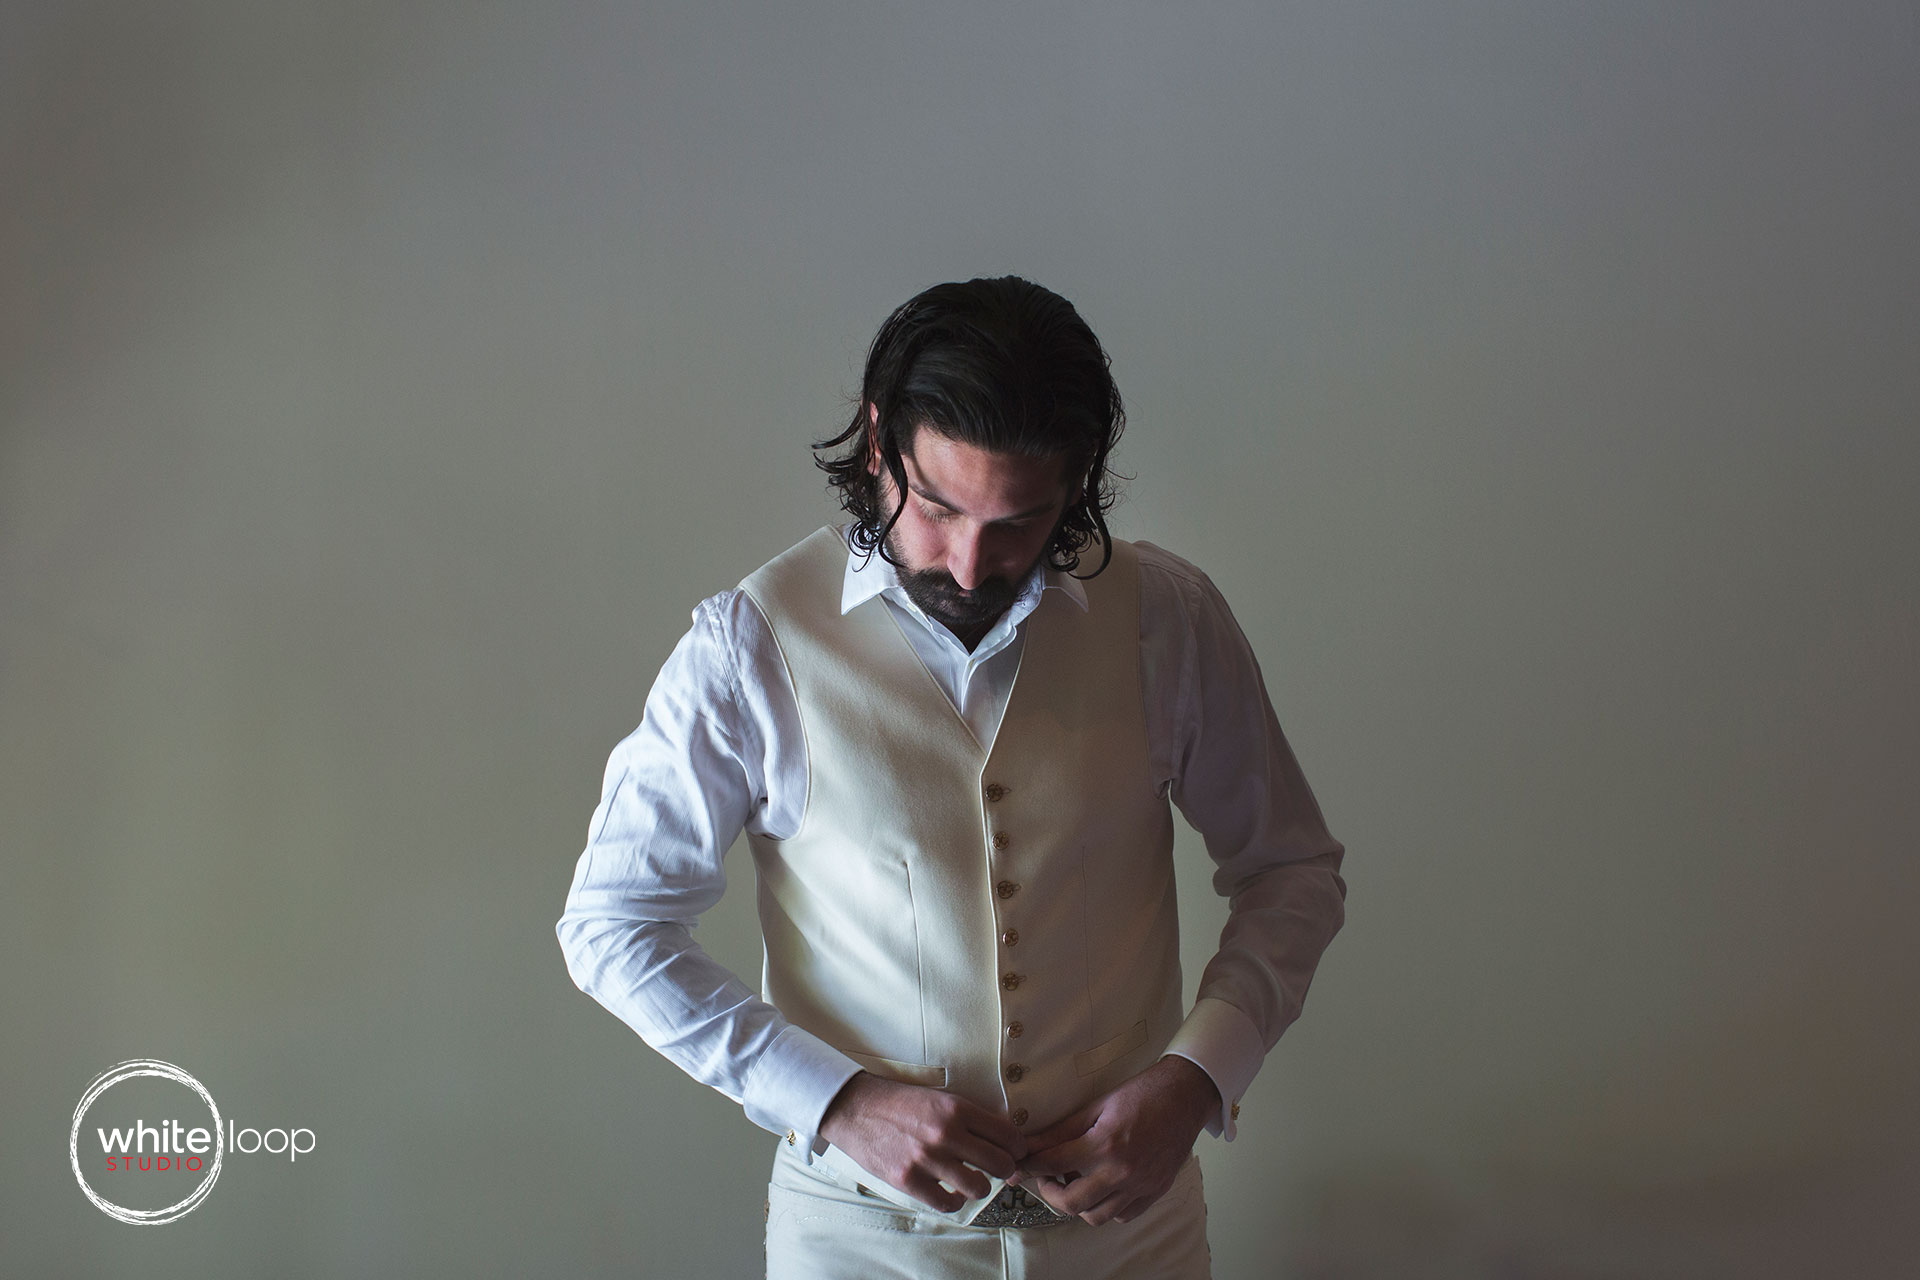 The groom is preparing for the big moment, adjusting his vest of the smoking, in a totally clear environment with a background of a white wall.